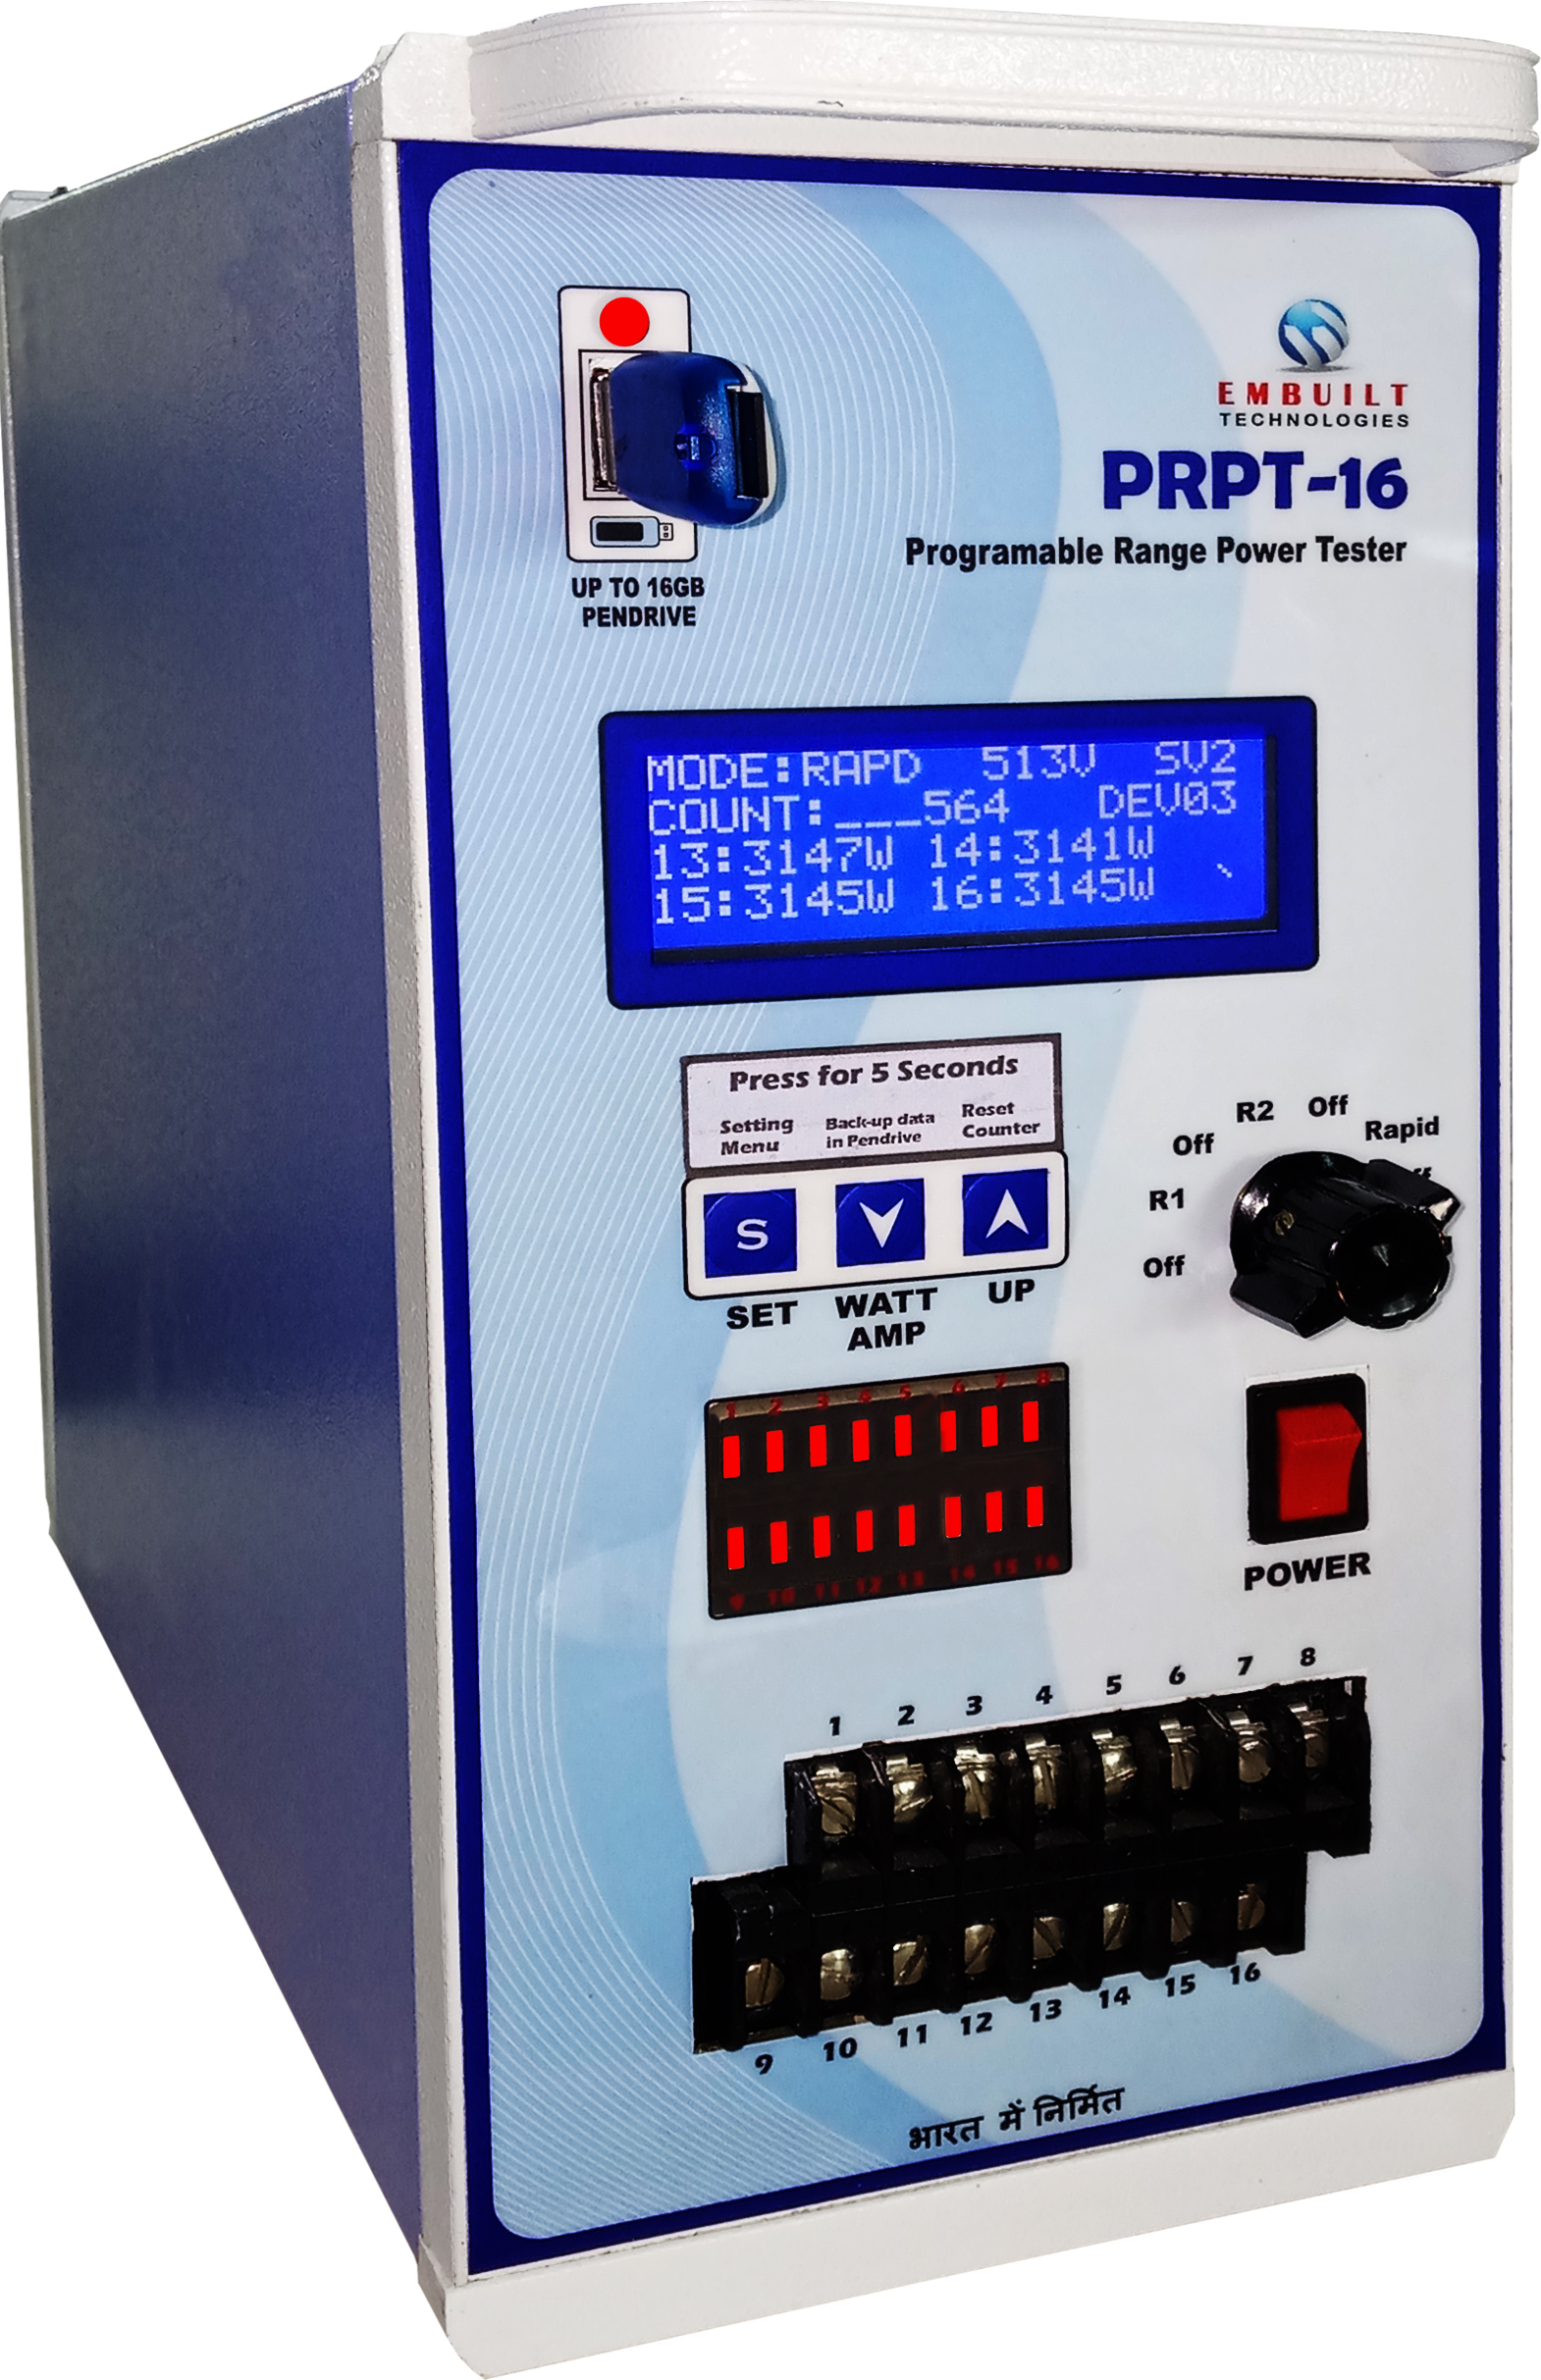 Testing Equipments Led Driver With Thd Measurement 6 Channels Phase Shift Control Prpt 16 Is Programmable Range Power Tester For